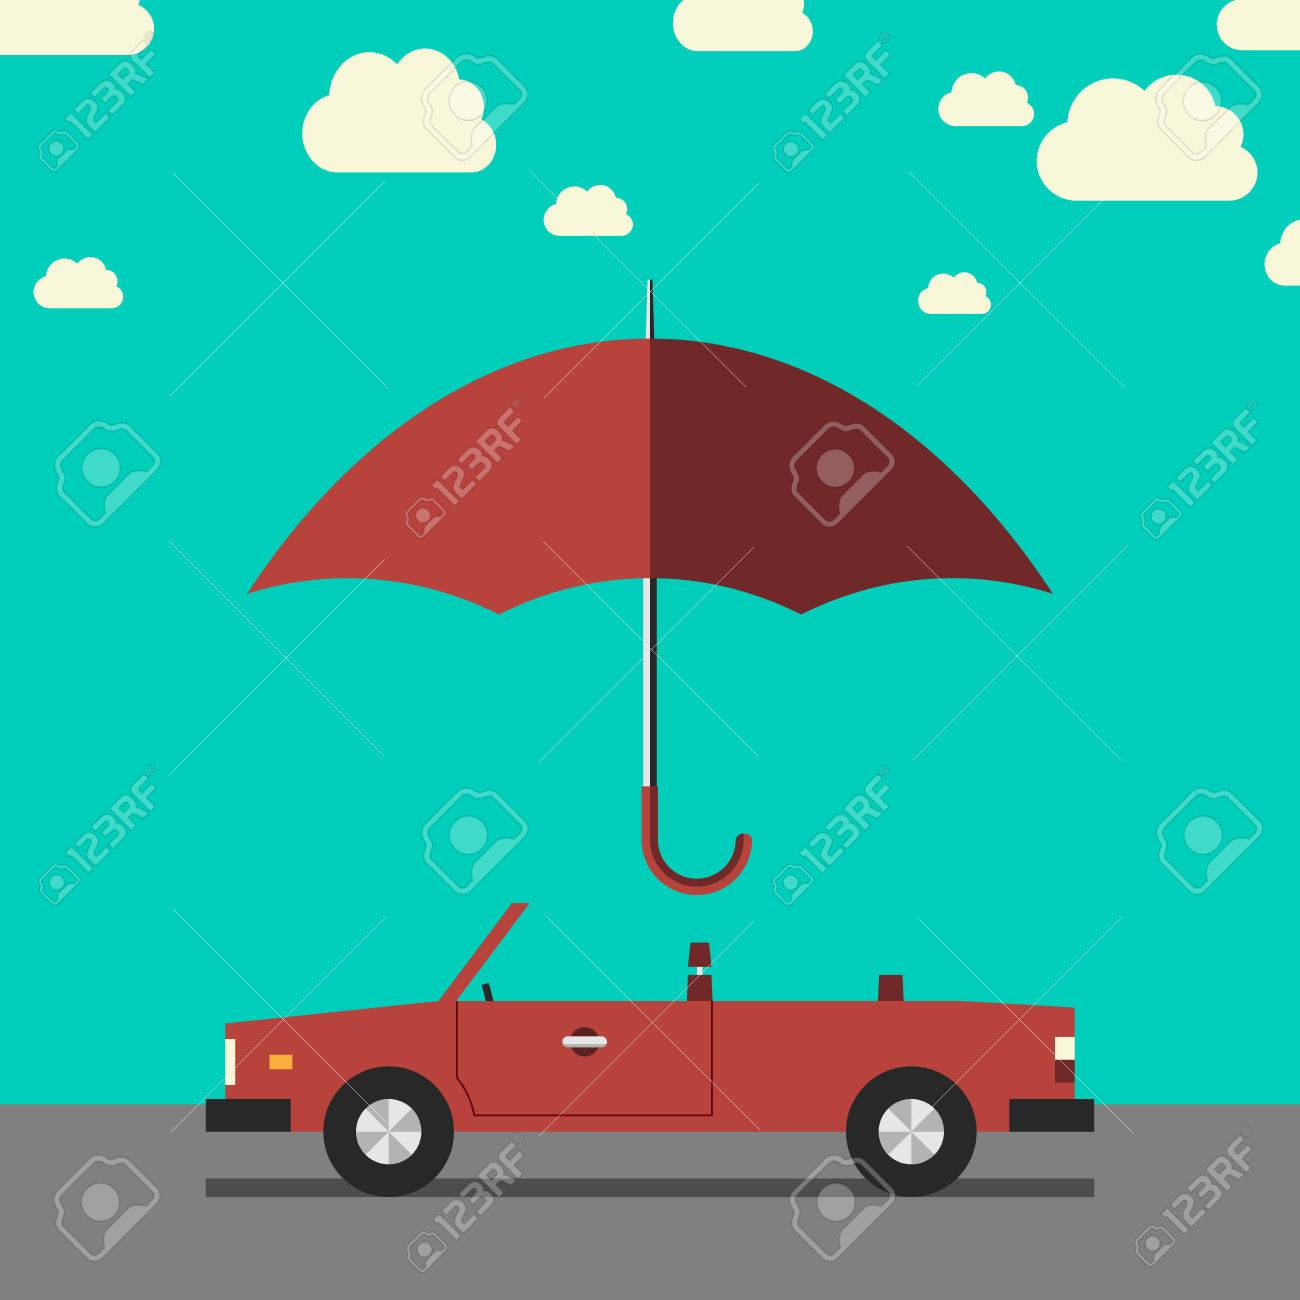 Empty red retro cabriolet on road under umbrella side view. Car insurance protection safety concept. EPS 10 vector illustration no transparency - 41126785